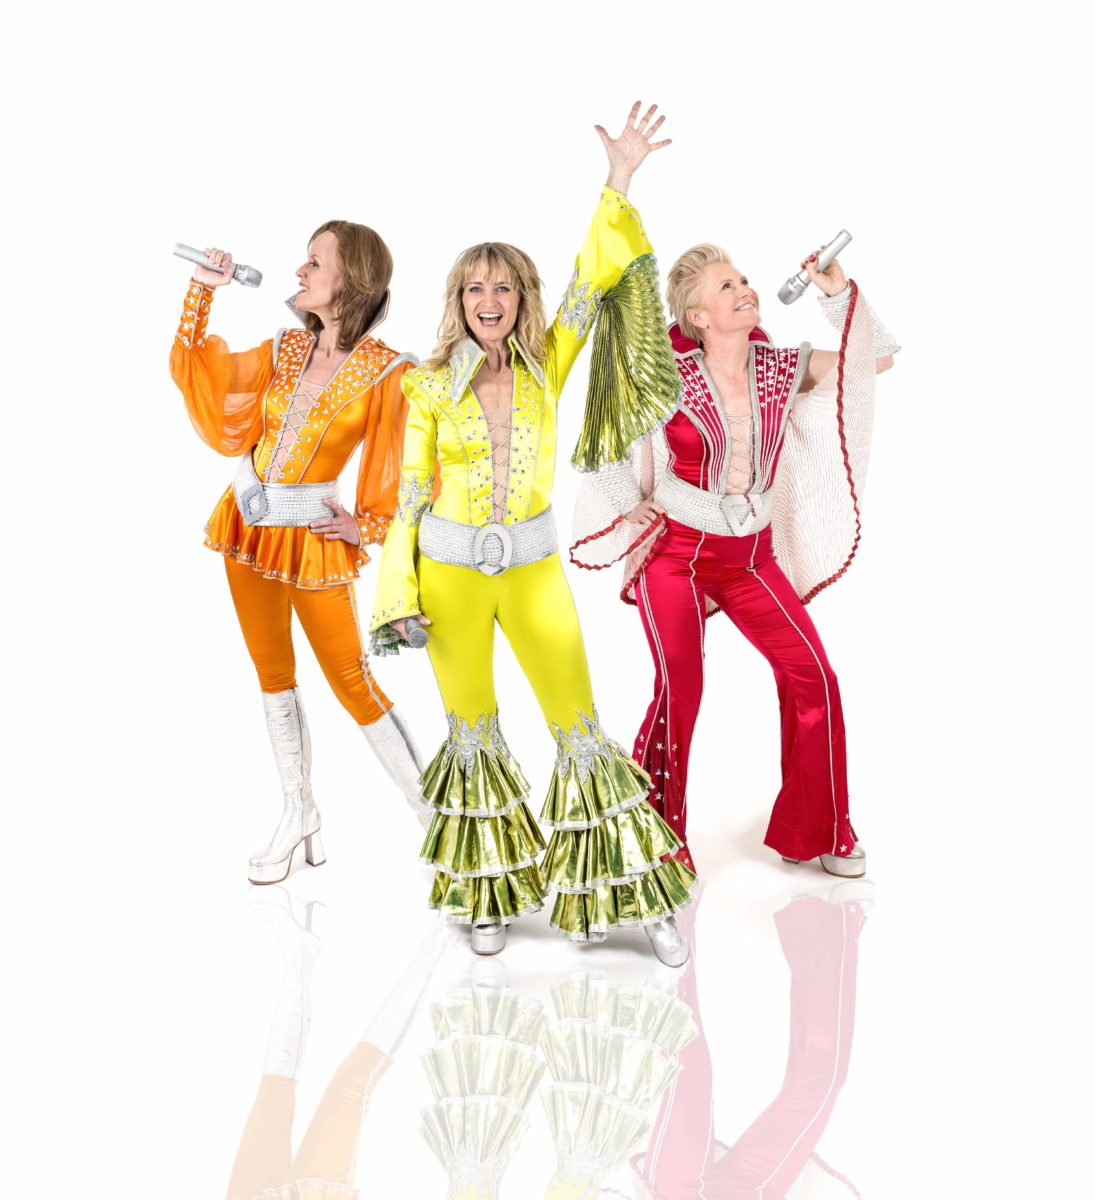 MAMMA MIA! Denmark 2020 - Donna and the Dynamos - FOTO Bjarne Stæhr